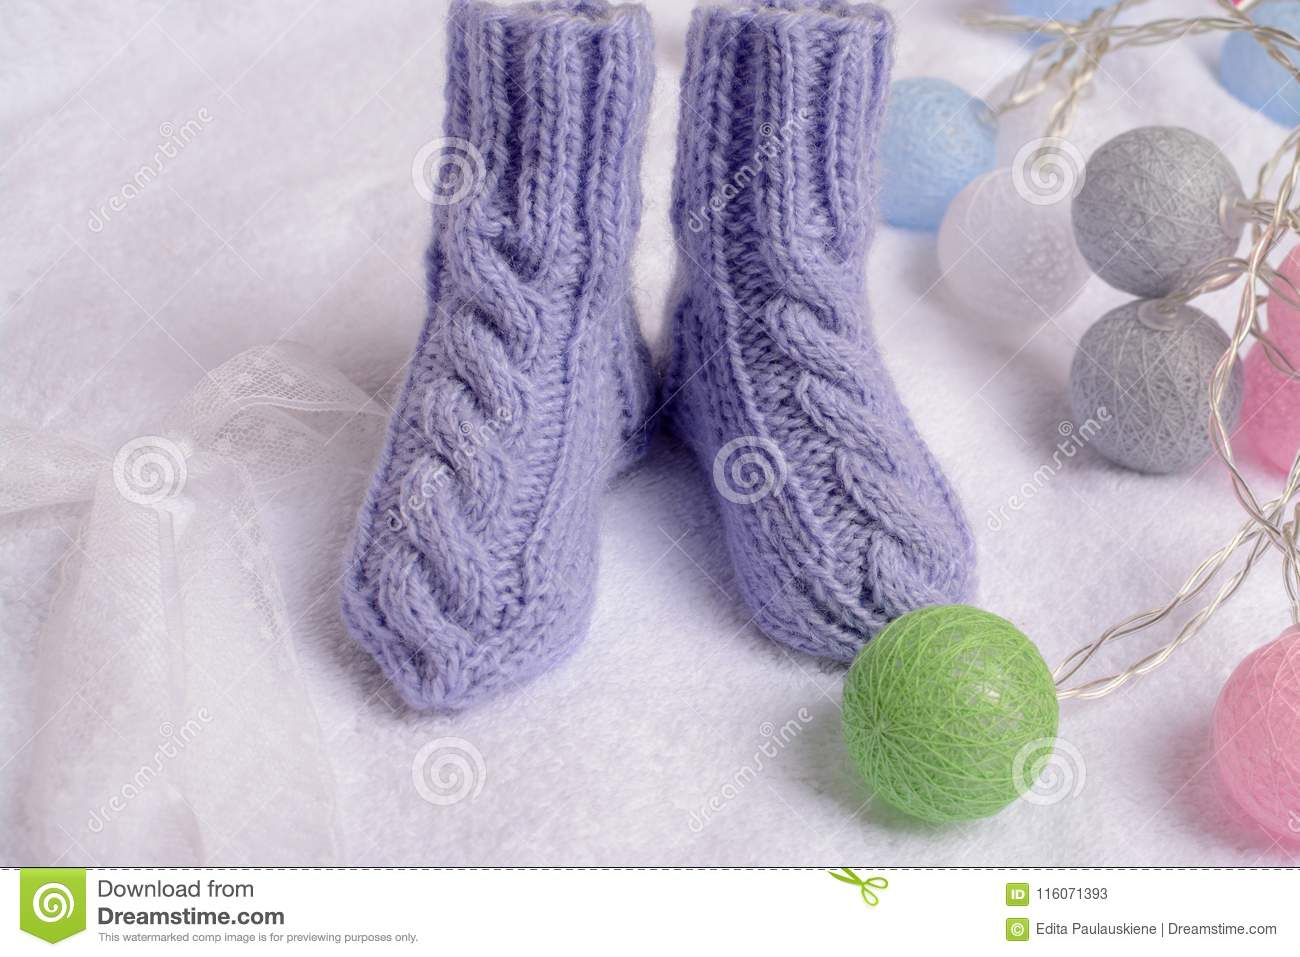 e7ecc7eb29a5 Purple Handmade Woolen Newborn Socks Stock Image - Image of made ...